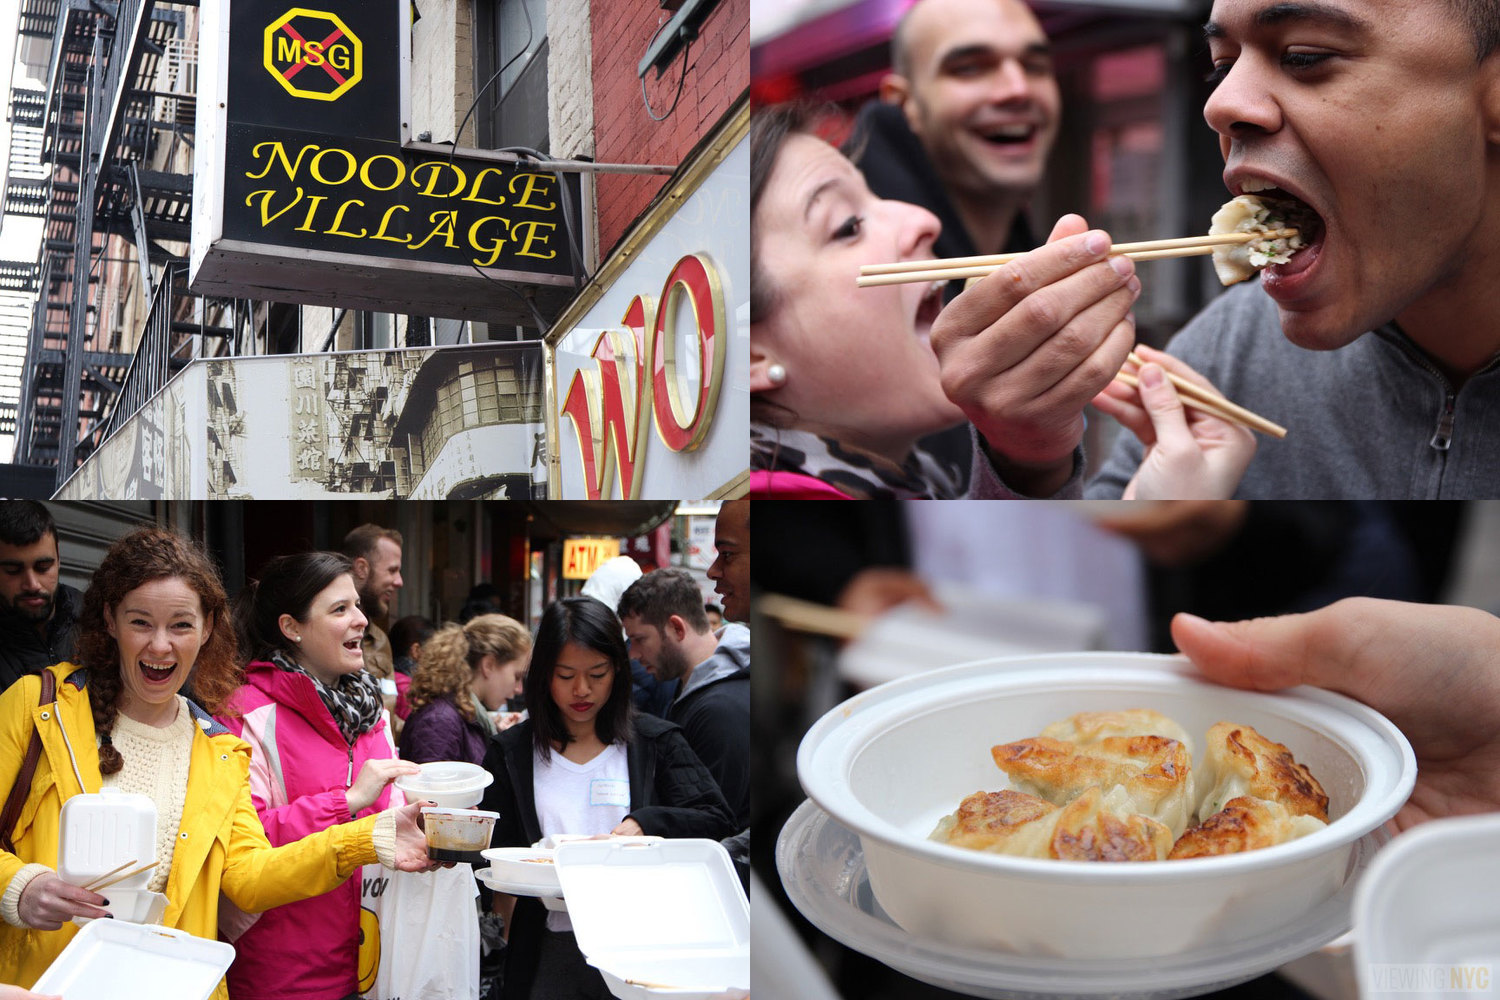 "Noodle Village | Check out Viewing NYC for more info on the 2015 Chinatown Dumpling Crawl and to see who won!  <a href=""https://viewing.nyc/the-best-dumpling-in-the-2015-viewing-nyc-chinatown-dumpling-crawl-is/"" rel=""nofollow"">viewing.nyc/the-best-dumpling-in-the-2015-viewing-nyc-chi...</a>"